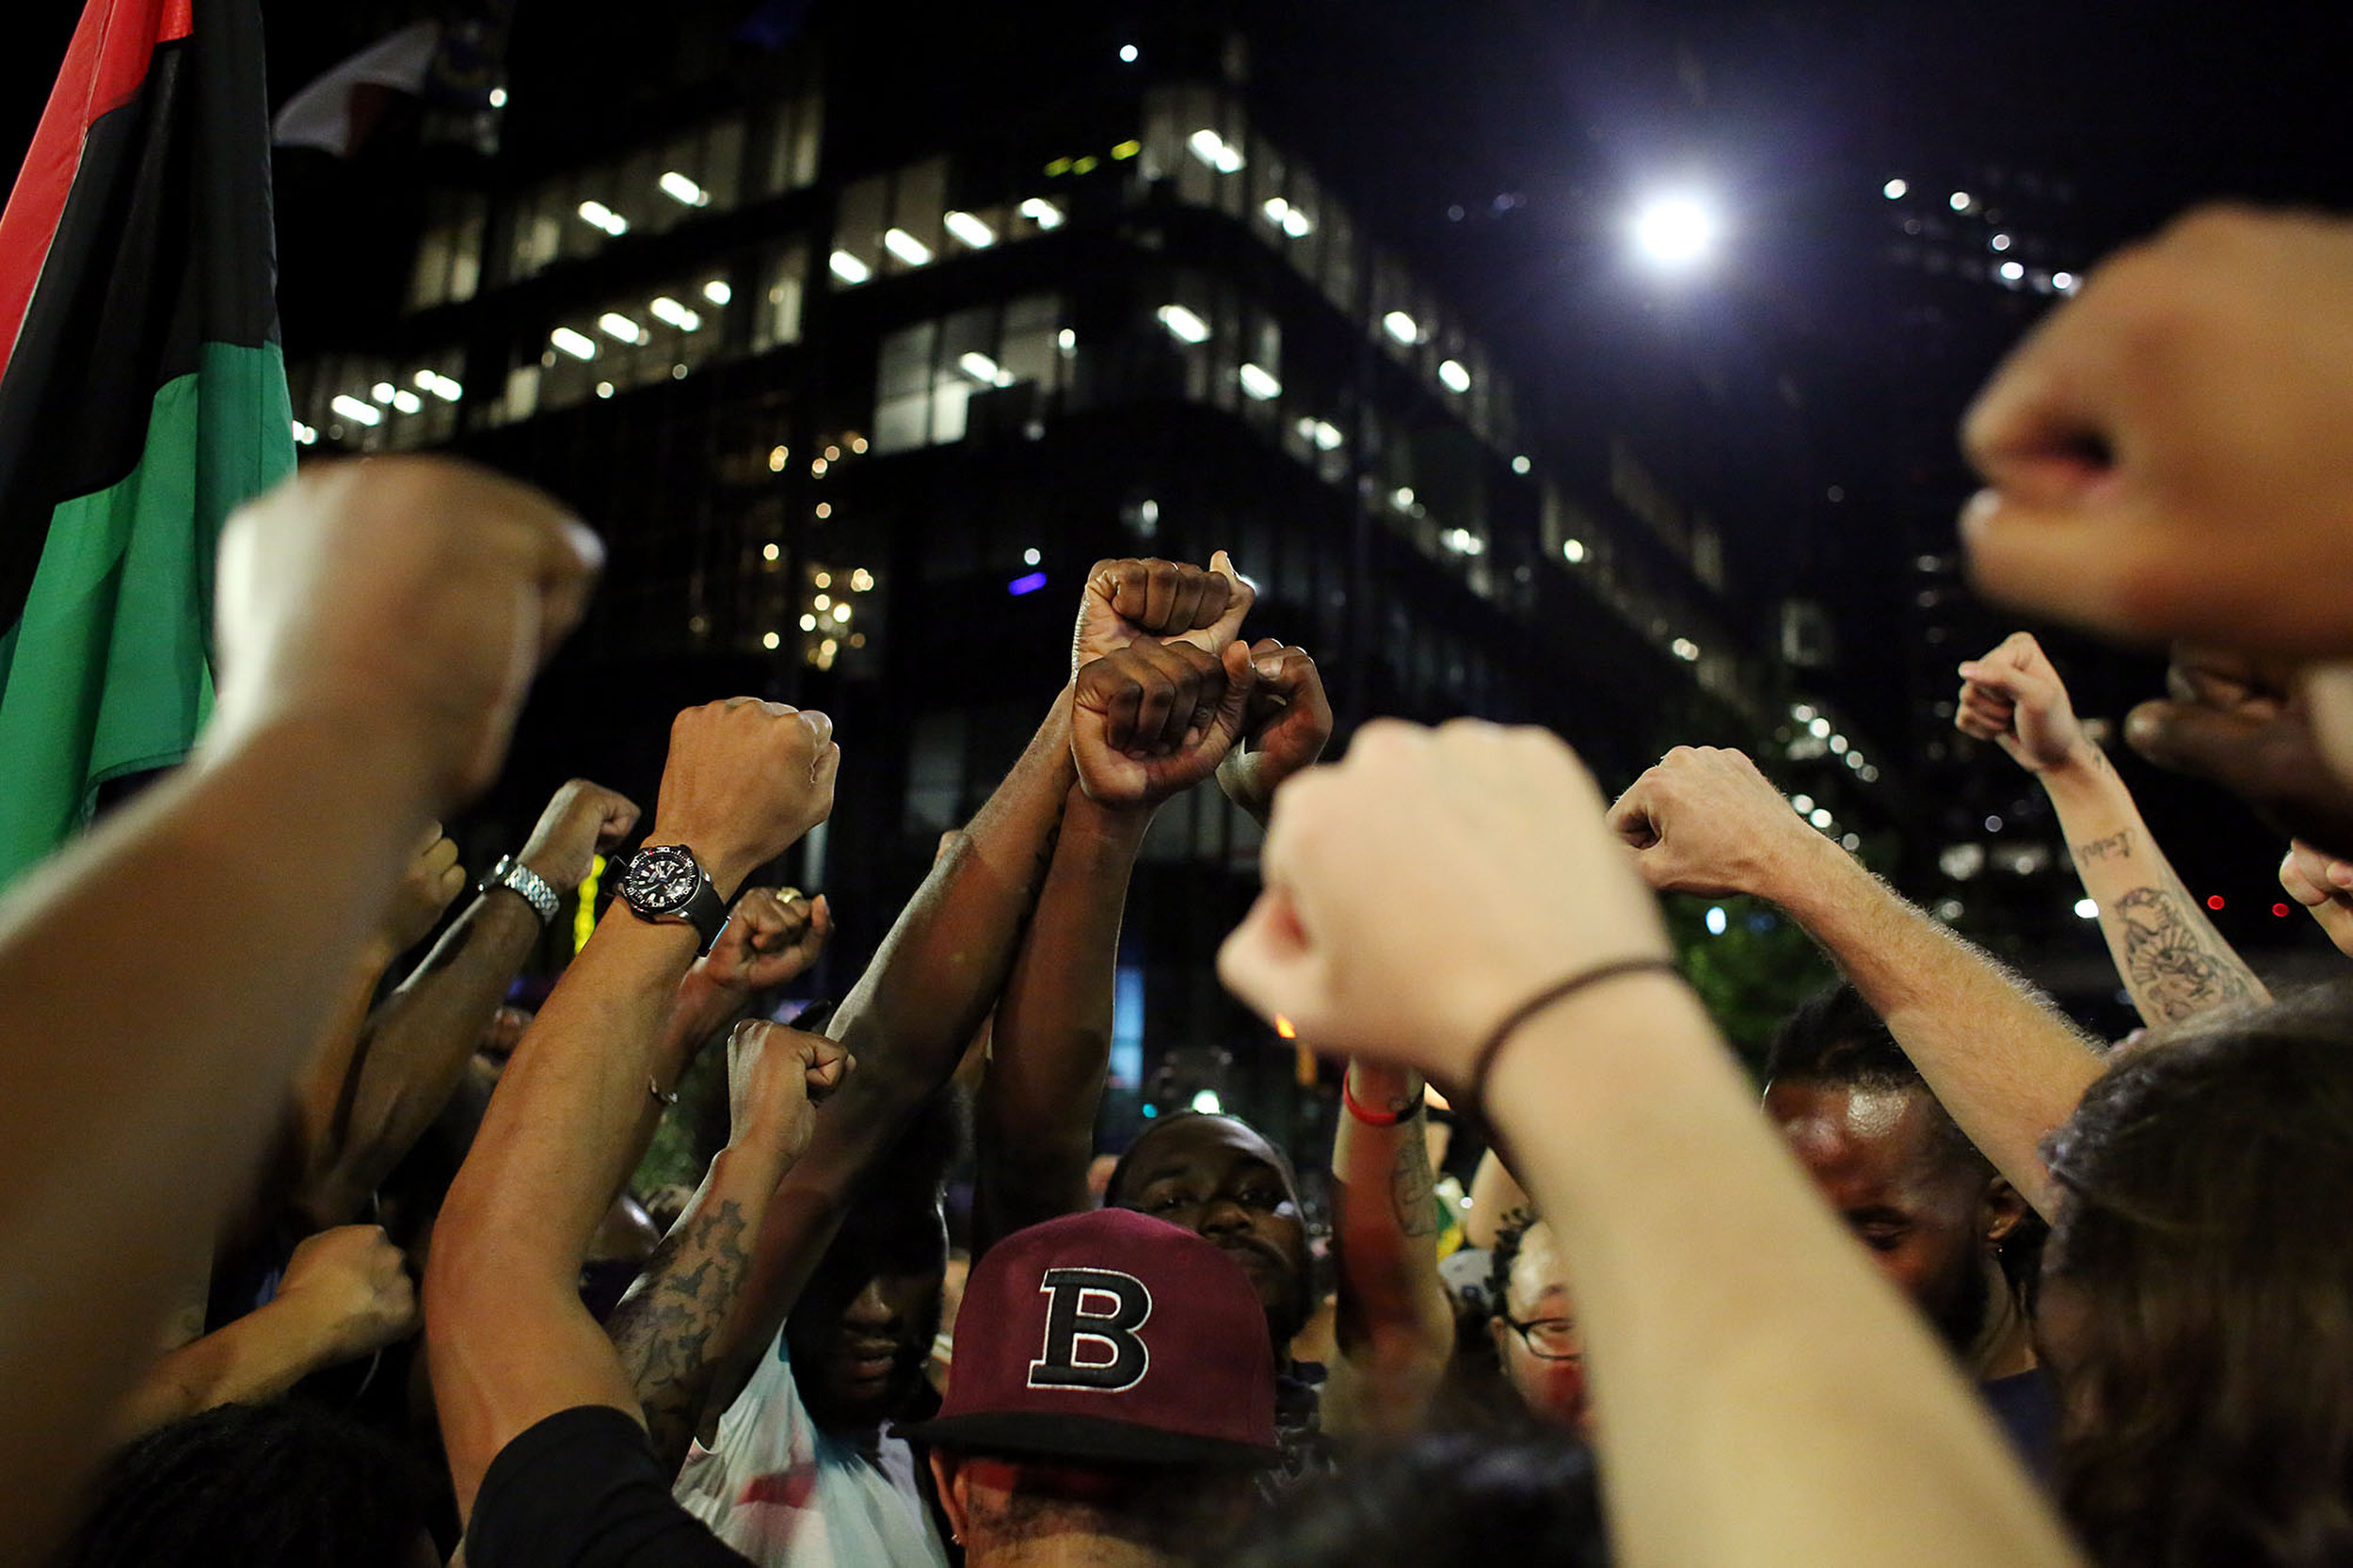 Protesters raise their fists together during a pause in a protest march, Sept. 22, 2016, in downtown Charlotte, N.C.